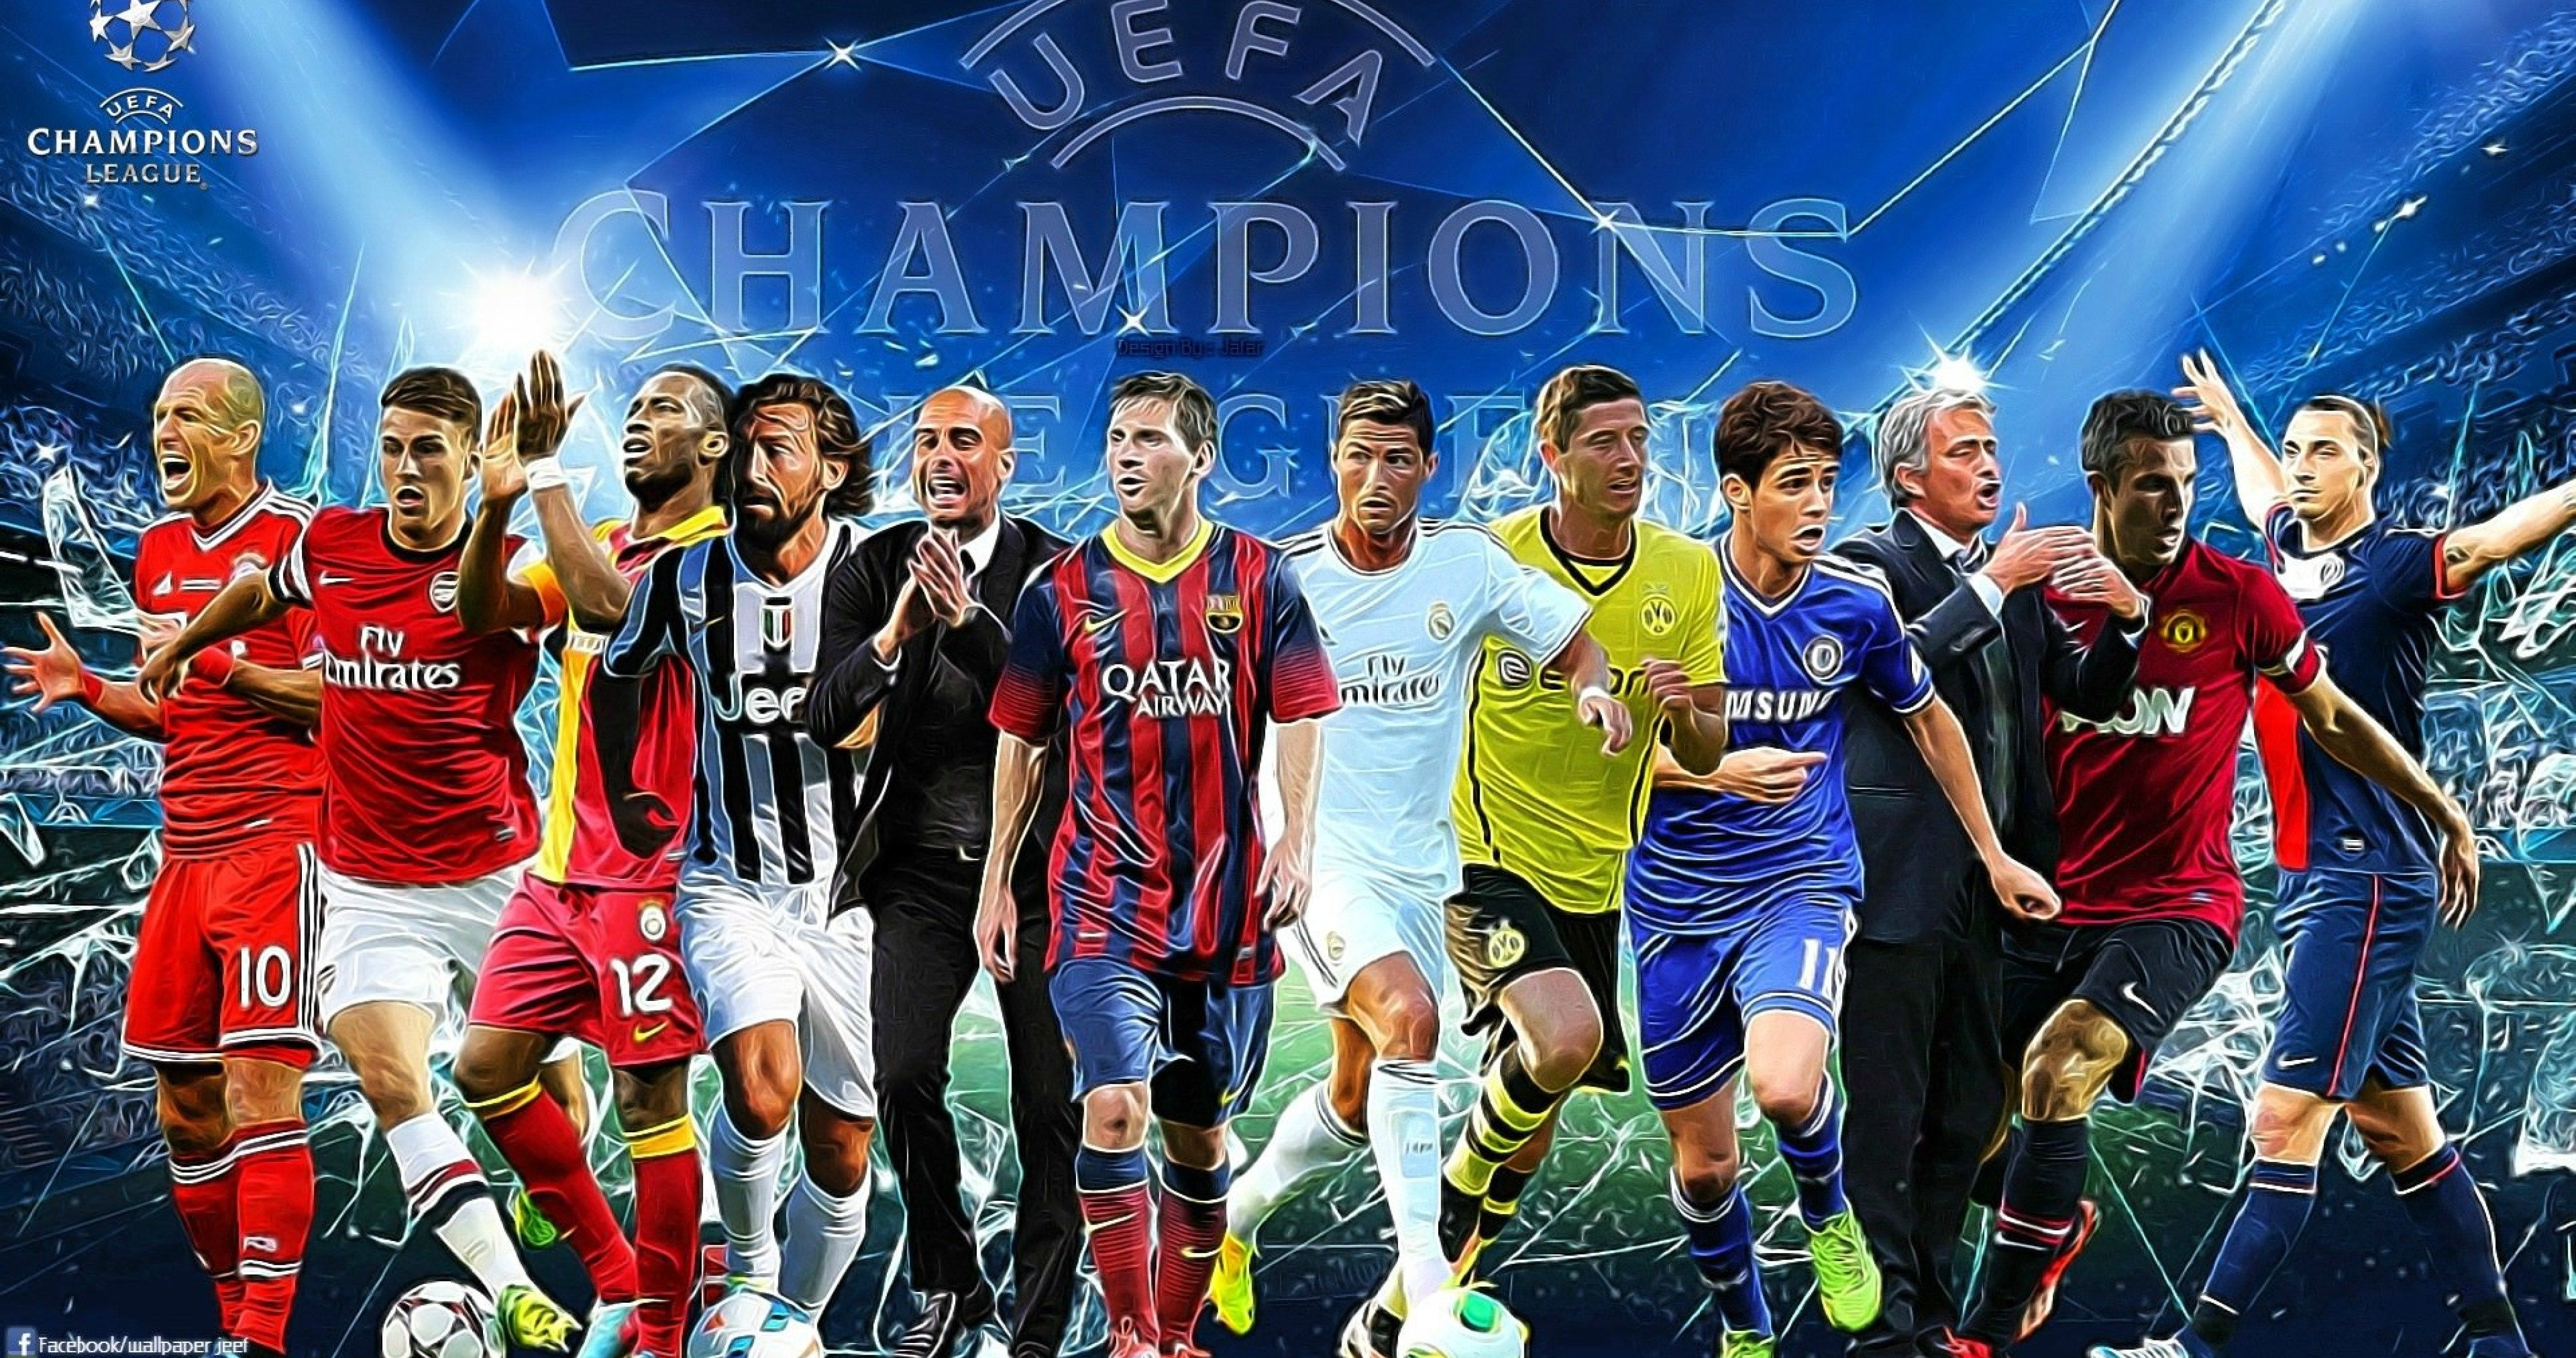 Uefa Champions League 2013 2014 4k Ultra Hd Wallpaper Uefa Champions League Champions League League